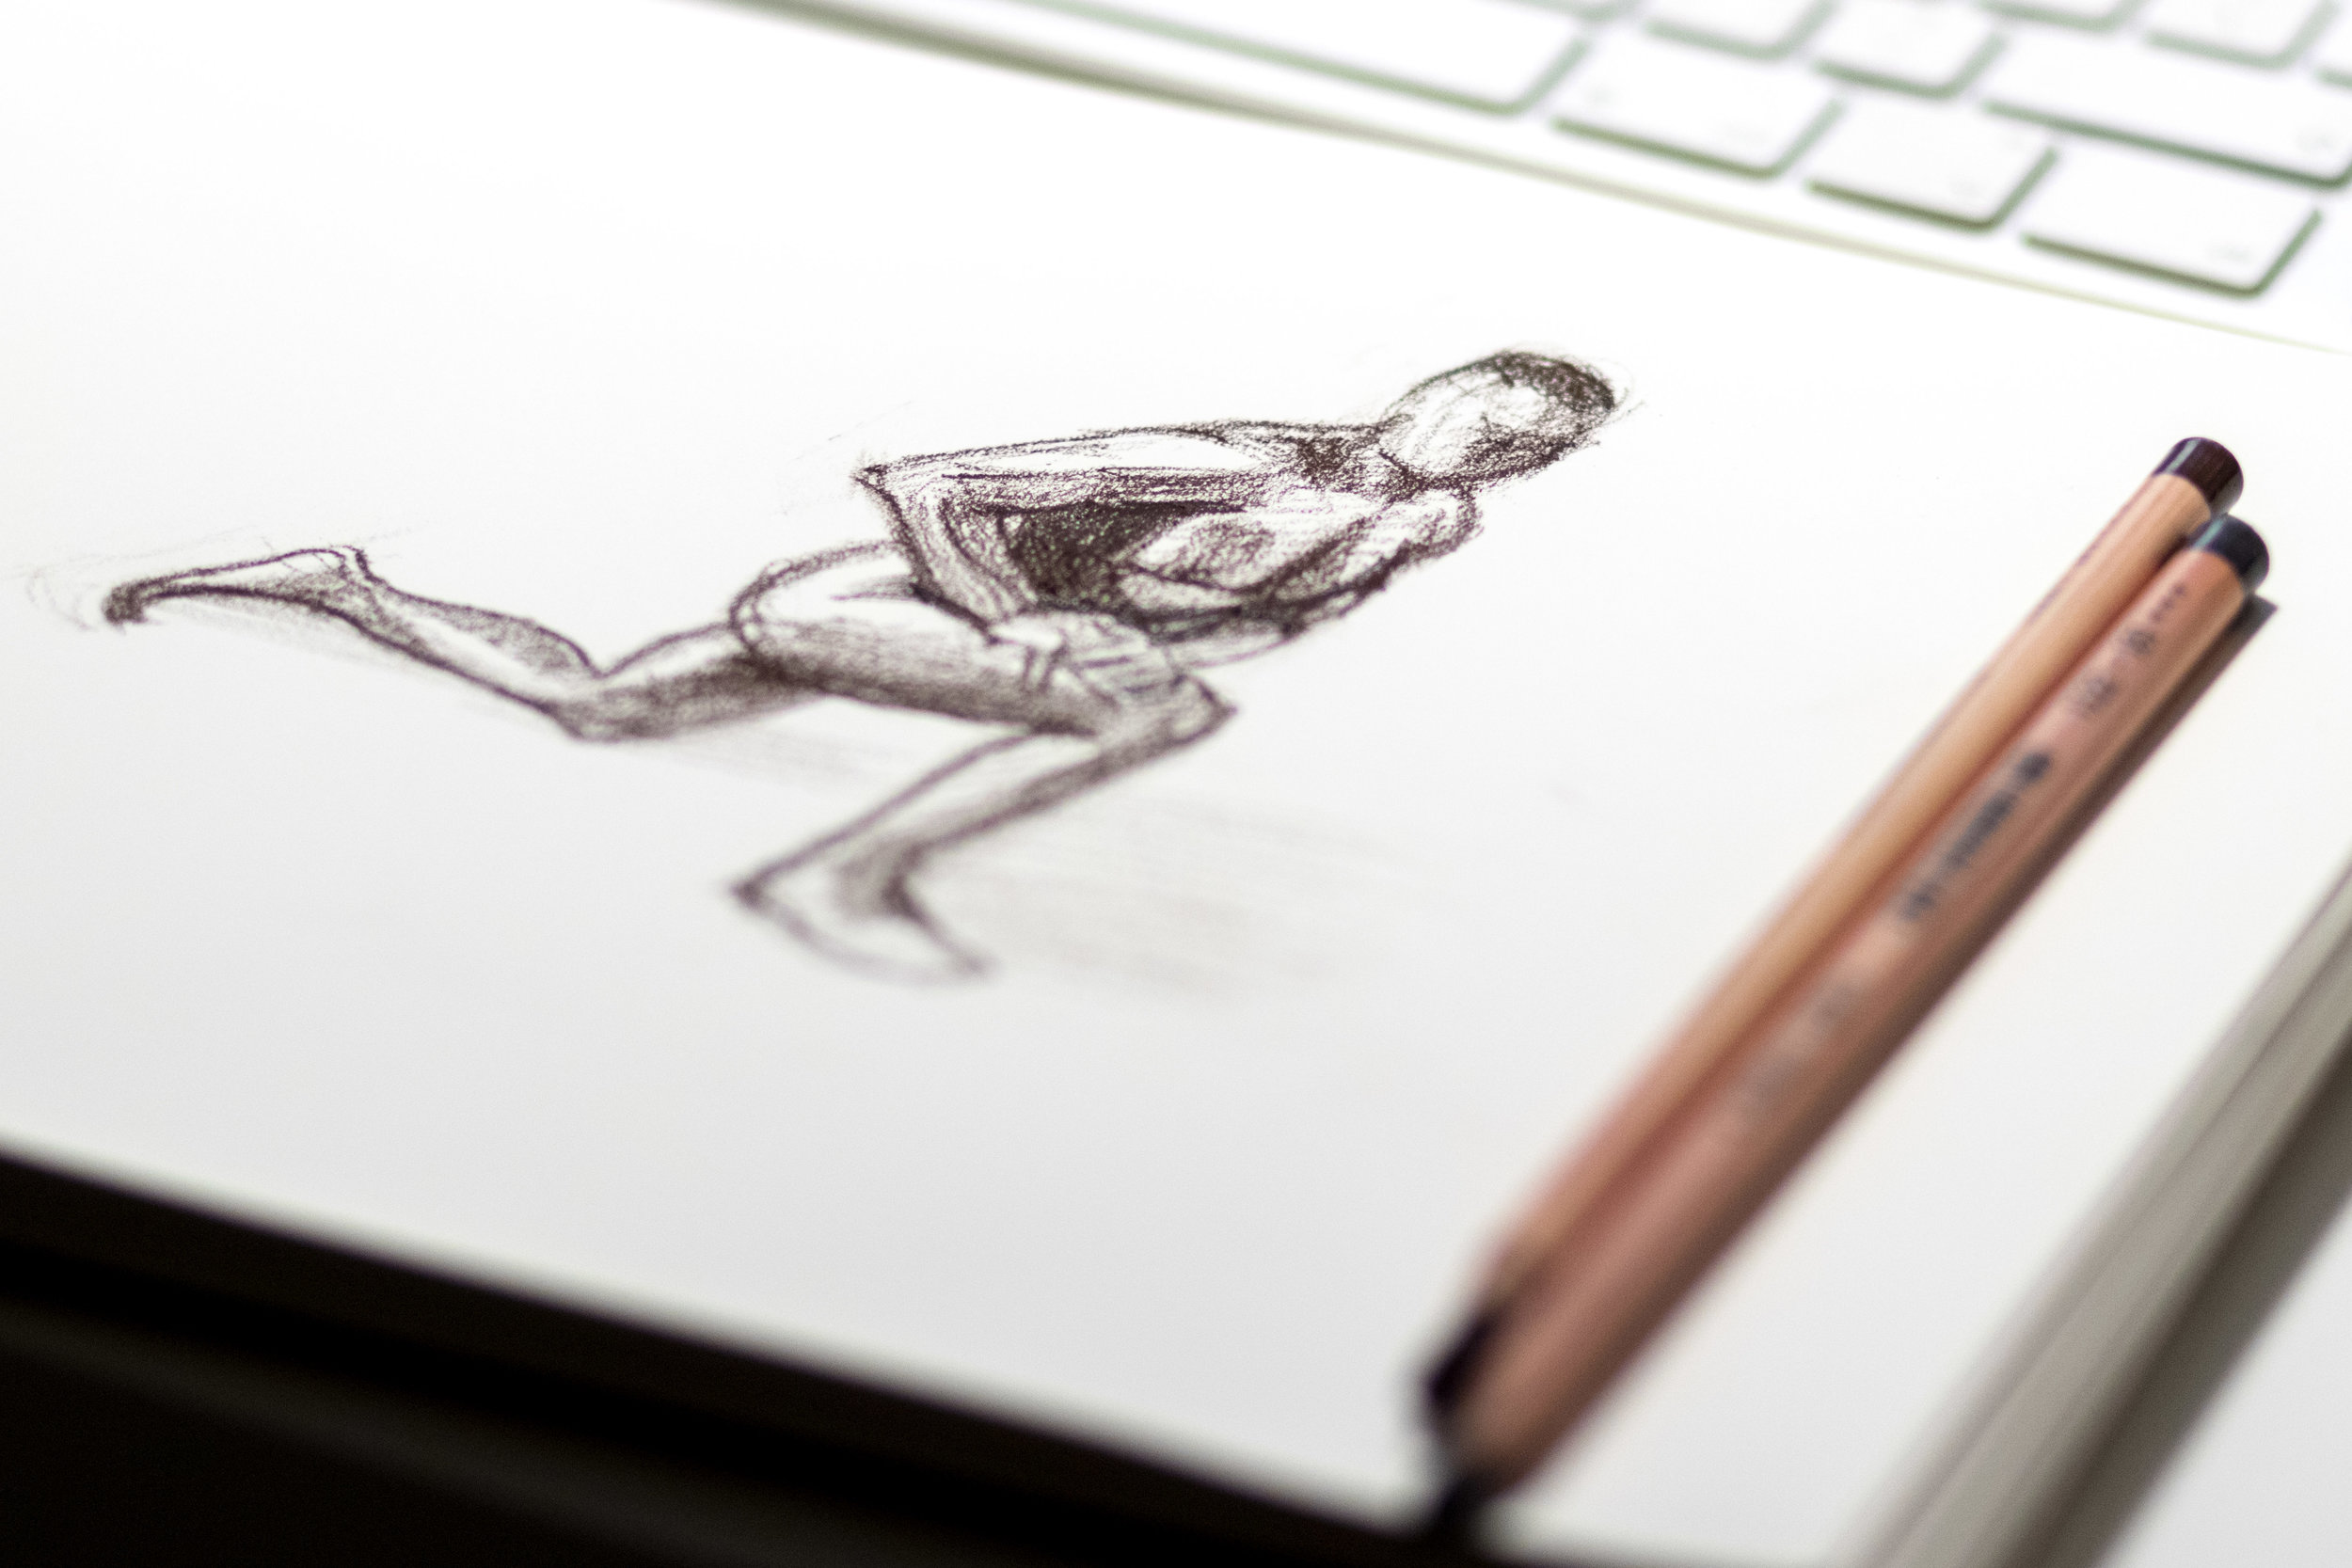 SATURDAY 21ST SEPTEMBER 10:30AM - 12:30PM - Whether you are a beginner at drawing the human body or have experience, all are welcome.Mark Rigby is a lecturer in Art and Design at Cambridge Regional College. He has been running Life Drawing Classes here in Cambridge for a number of years.Maximum spaces: 20Workshop Leader: Mark Rigby